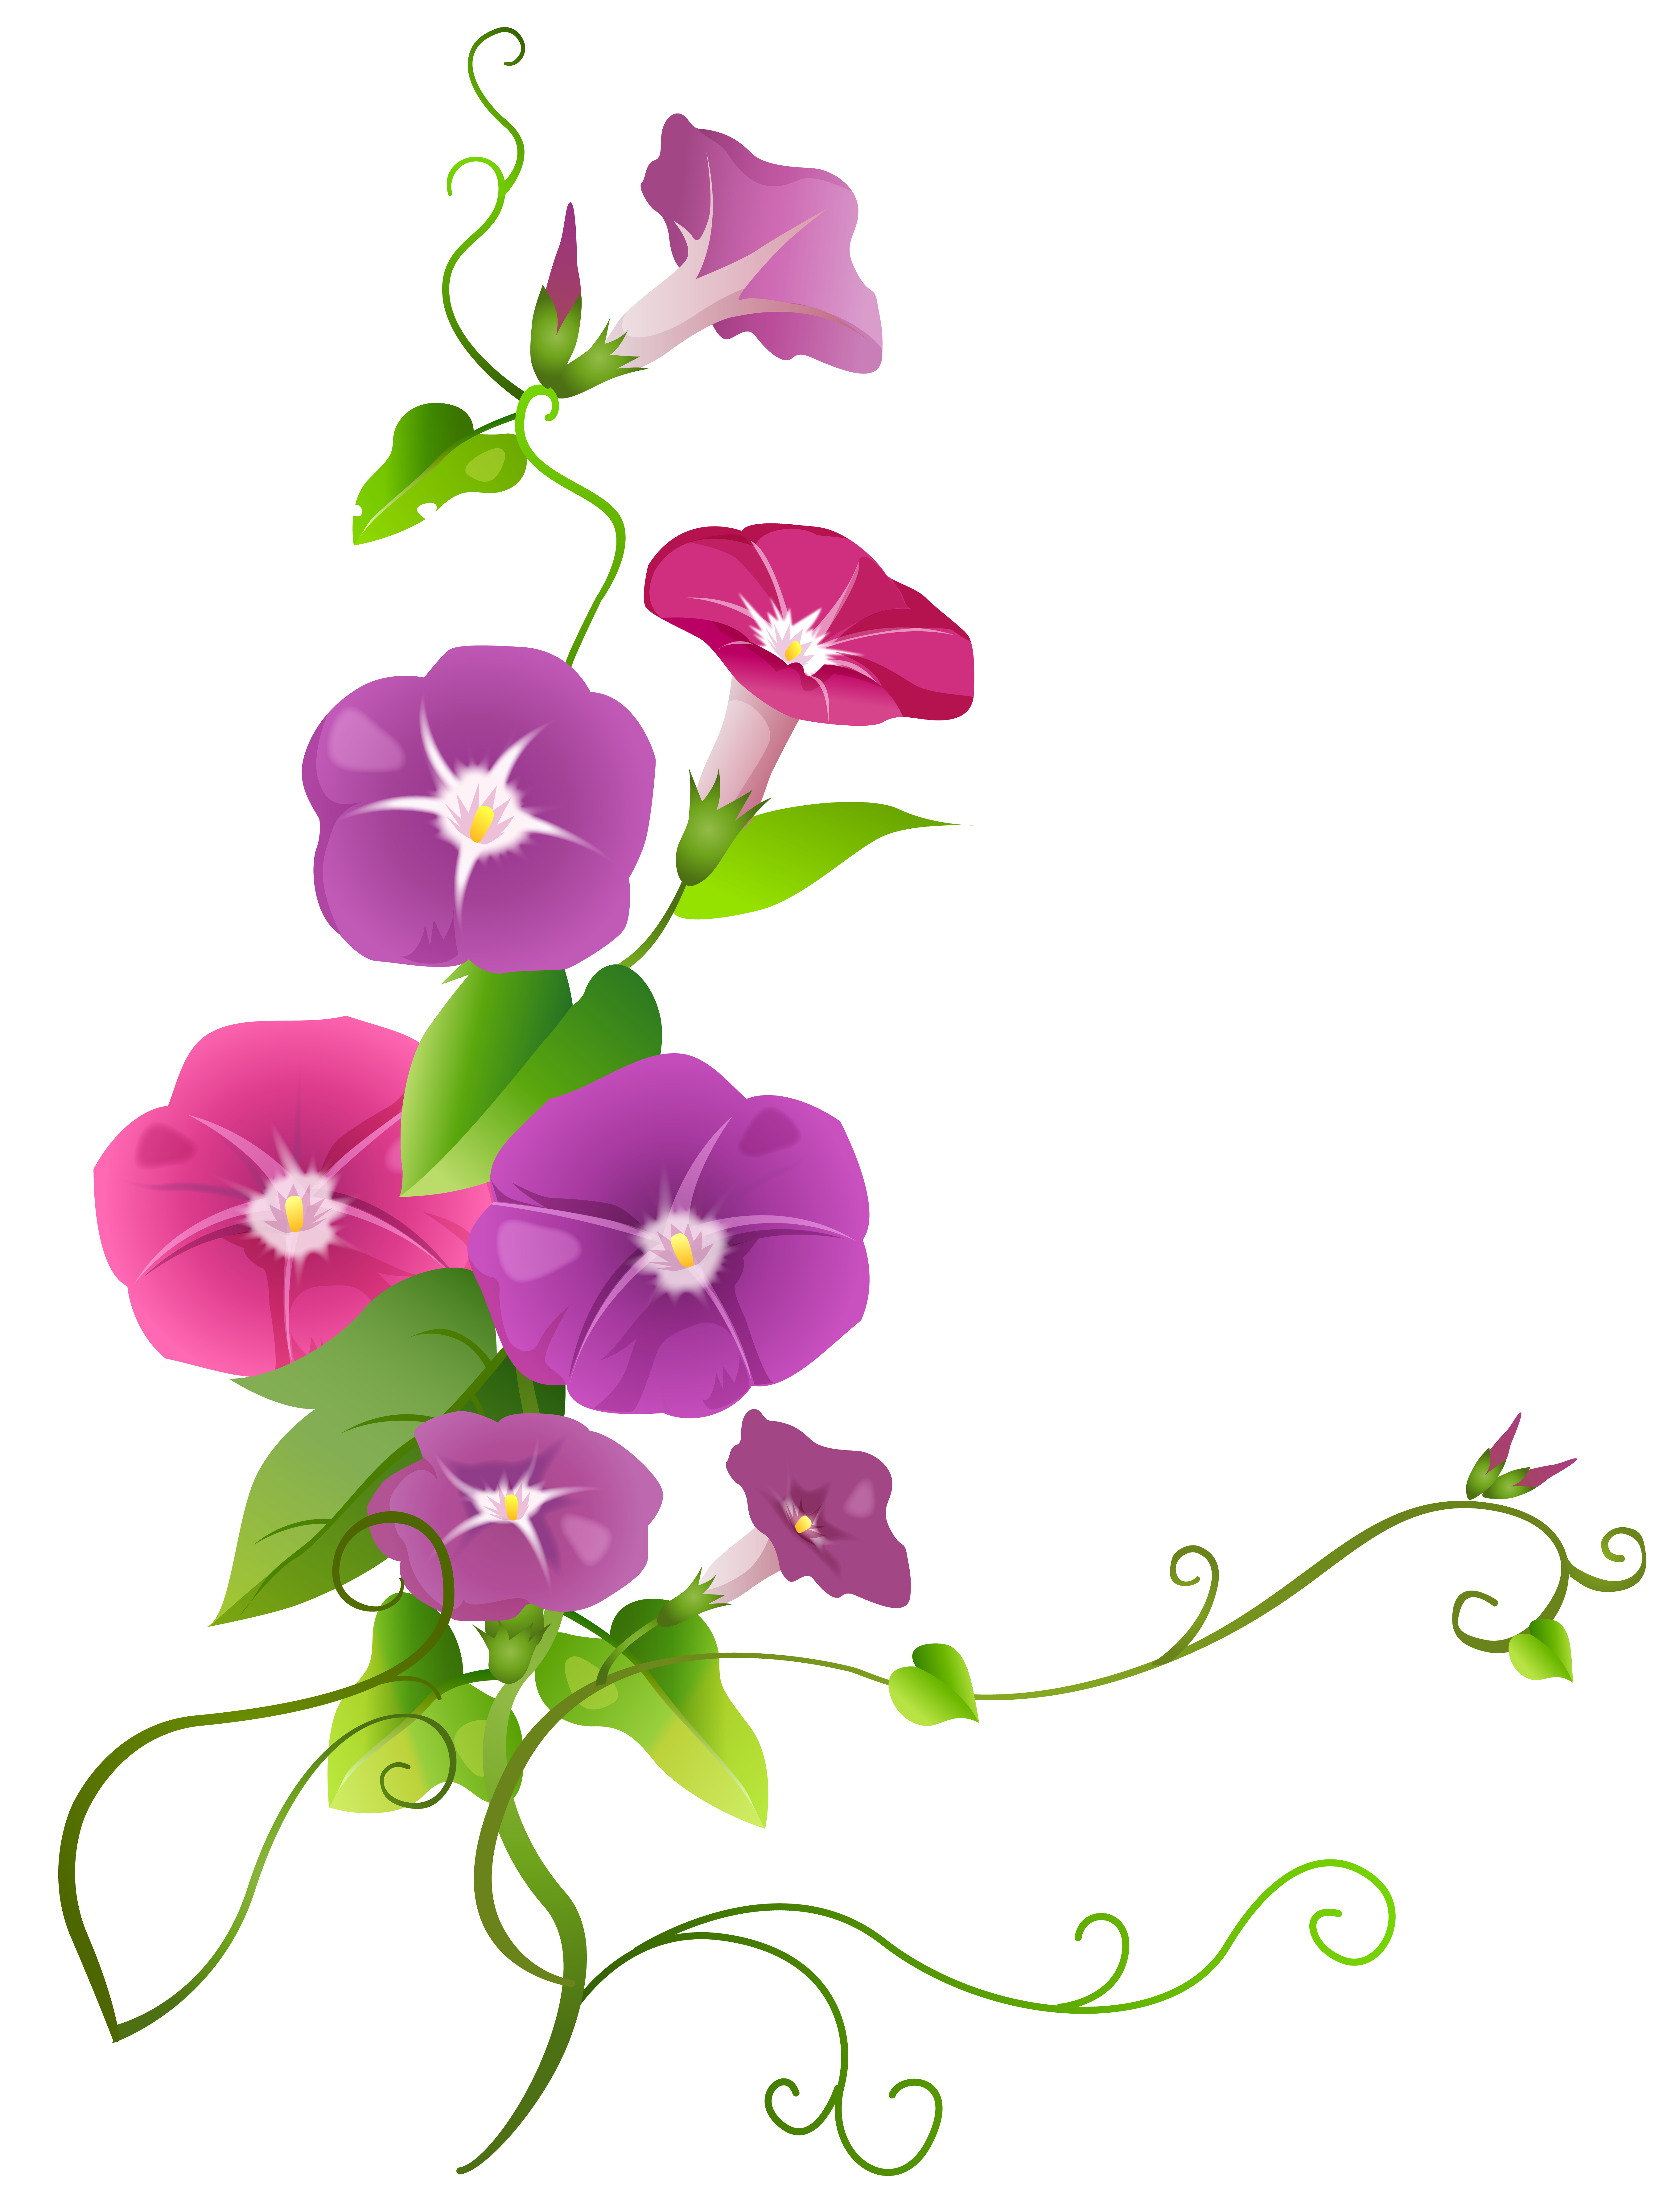 flower art clipart at getdrawings com free for personal use flower rh getdrawings com clipart flower borders design clipart flower borders design